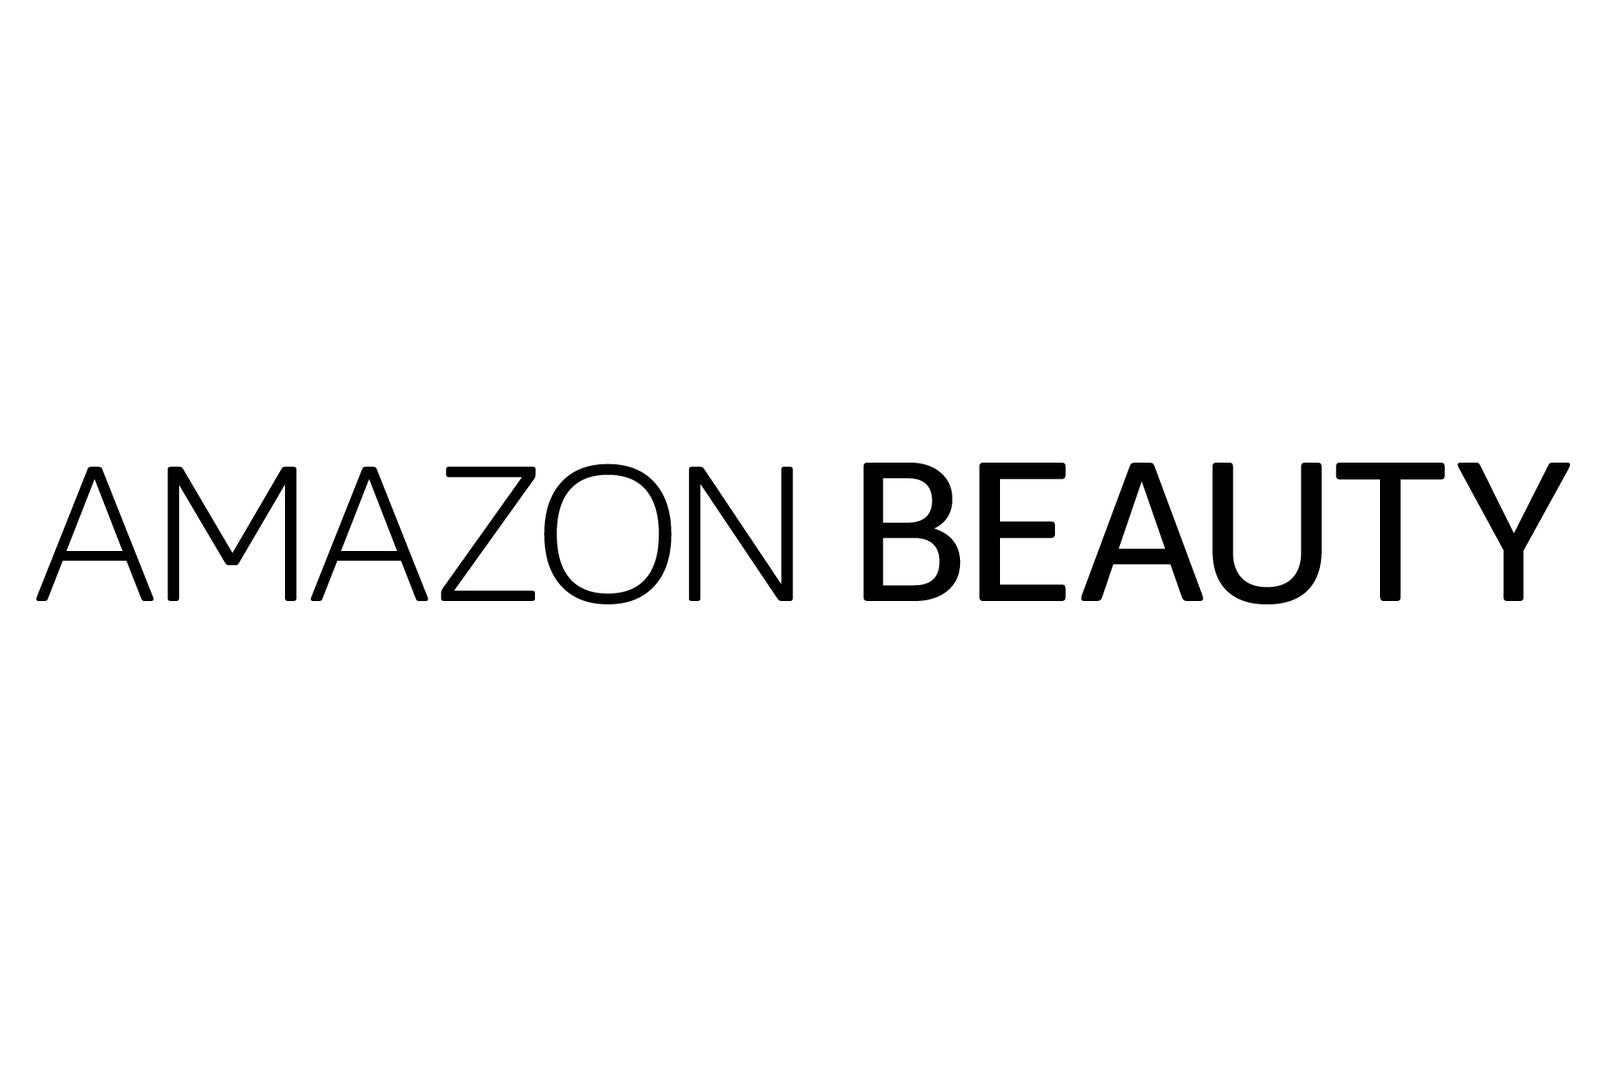 Discover a world of lip colors and trends this International Lipstick Day on Amazon Beauty's Lipstick Day Store